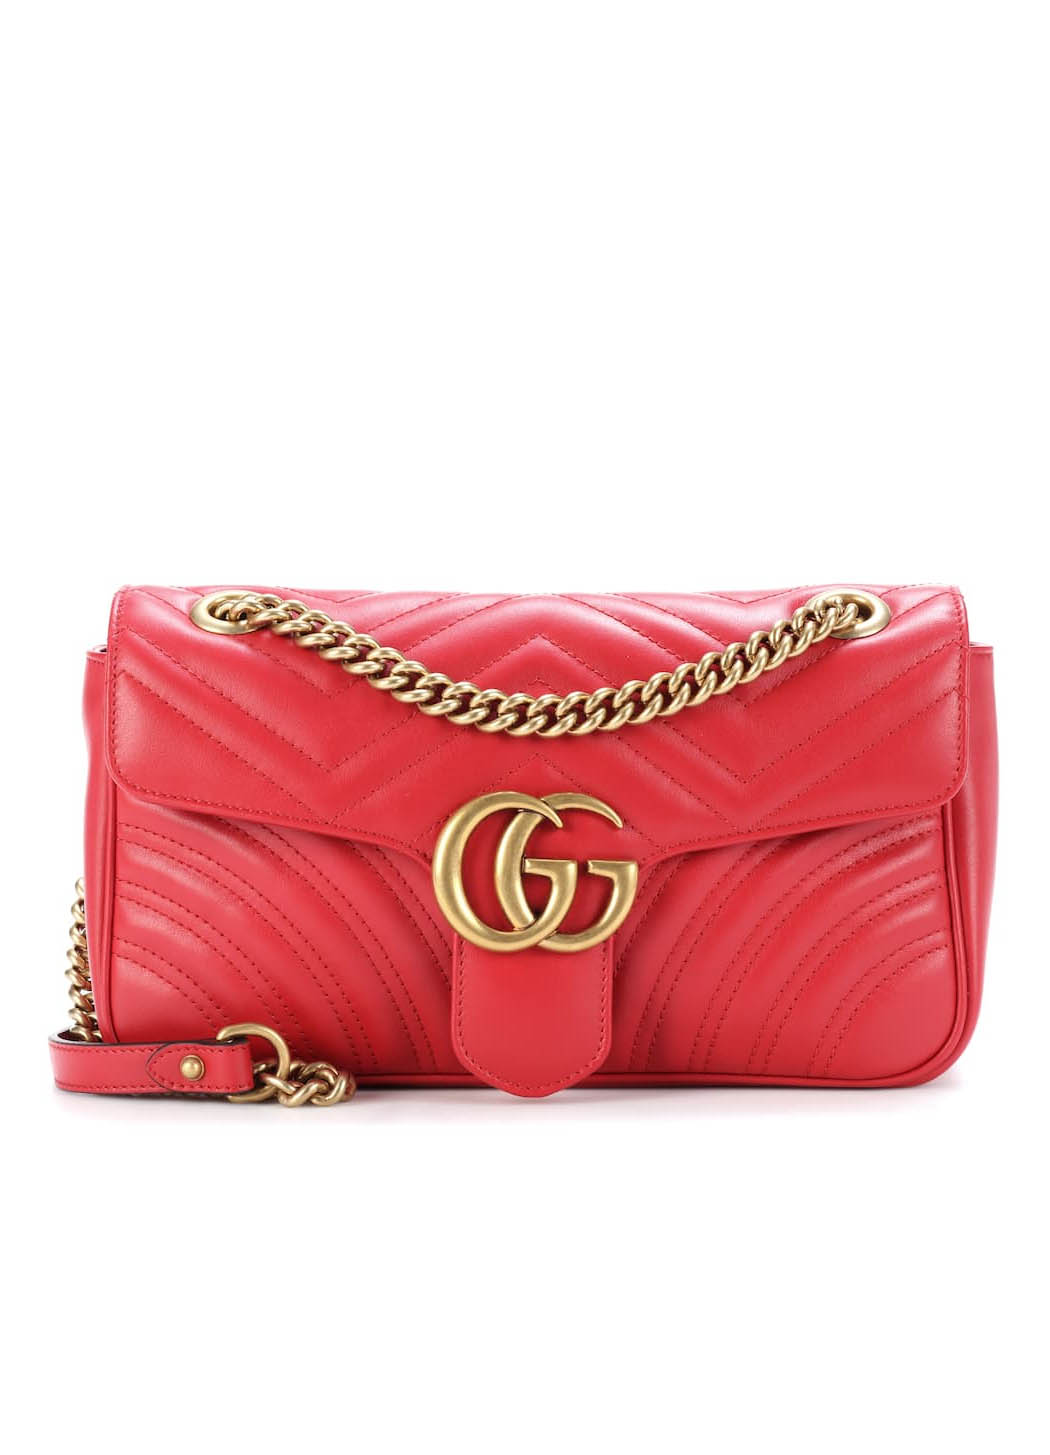 red gucci bag review